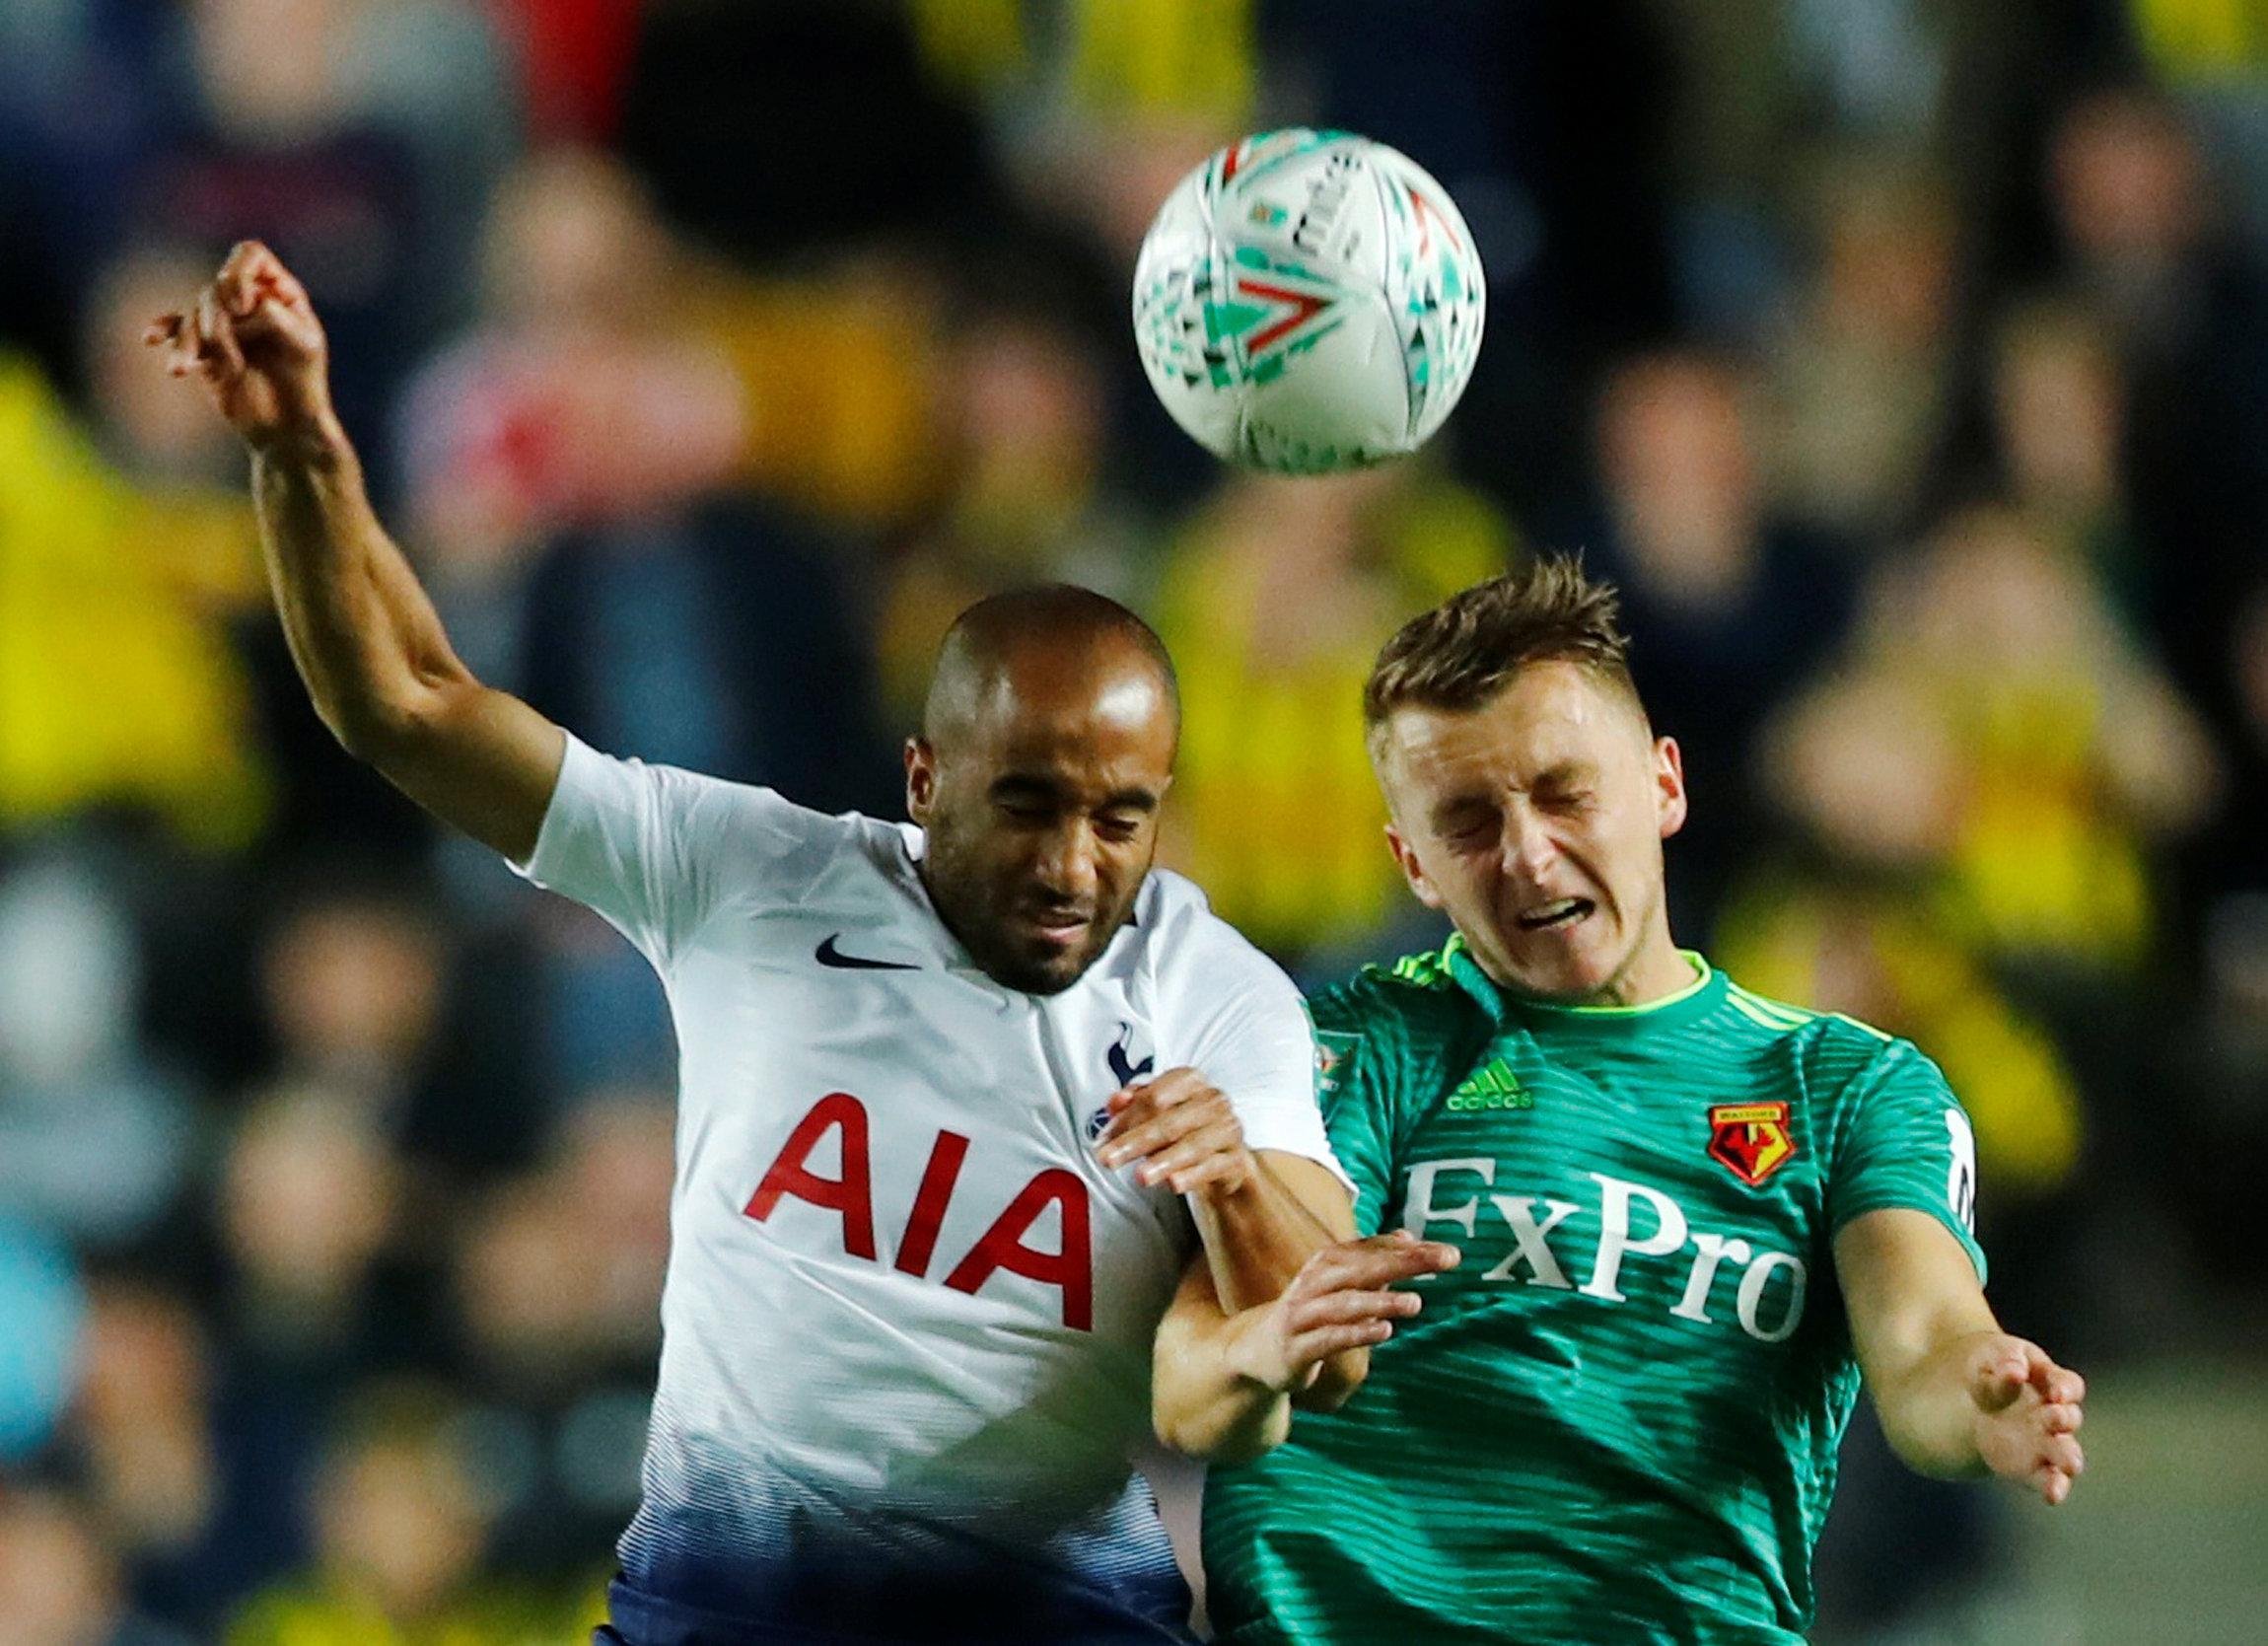 Ben Wilmot in action against Lucas Moura in the Carabao Cup tie with Tottenham Hotspur. Picture: Action Images